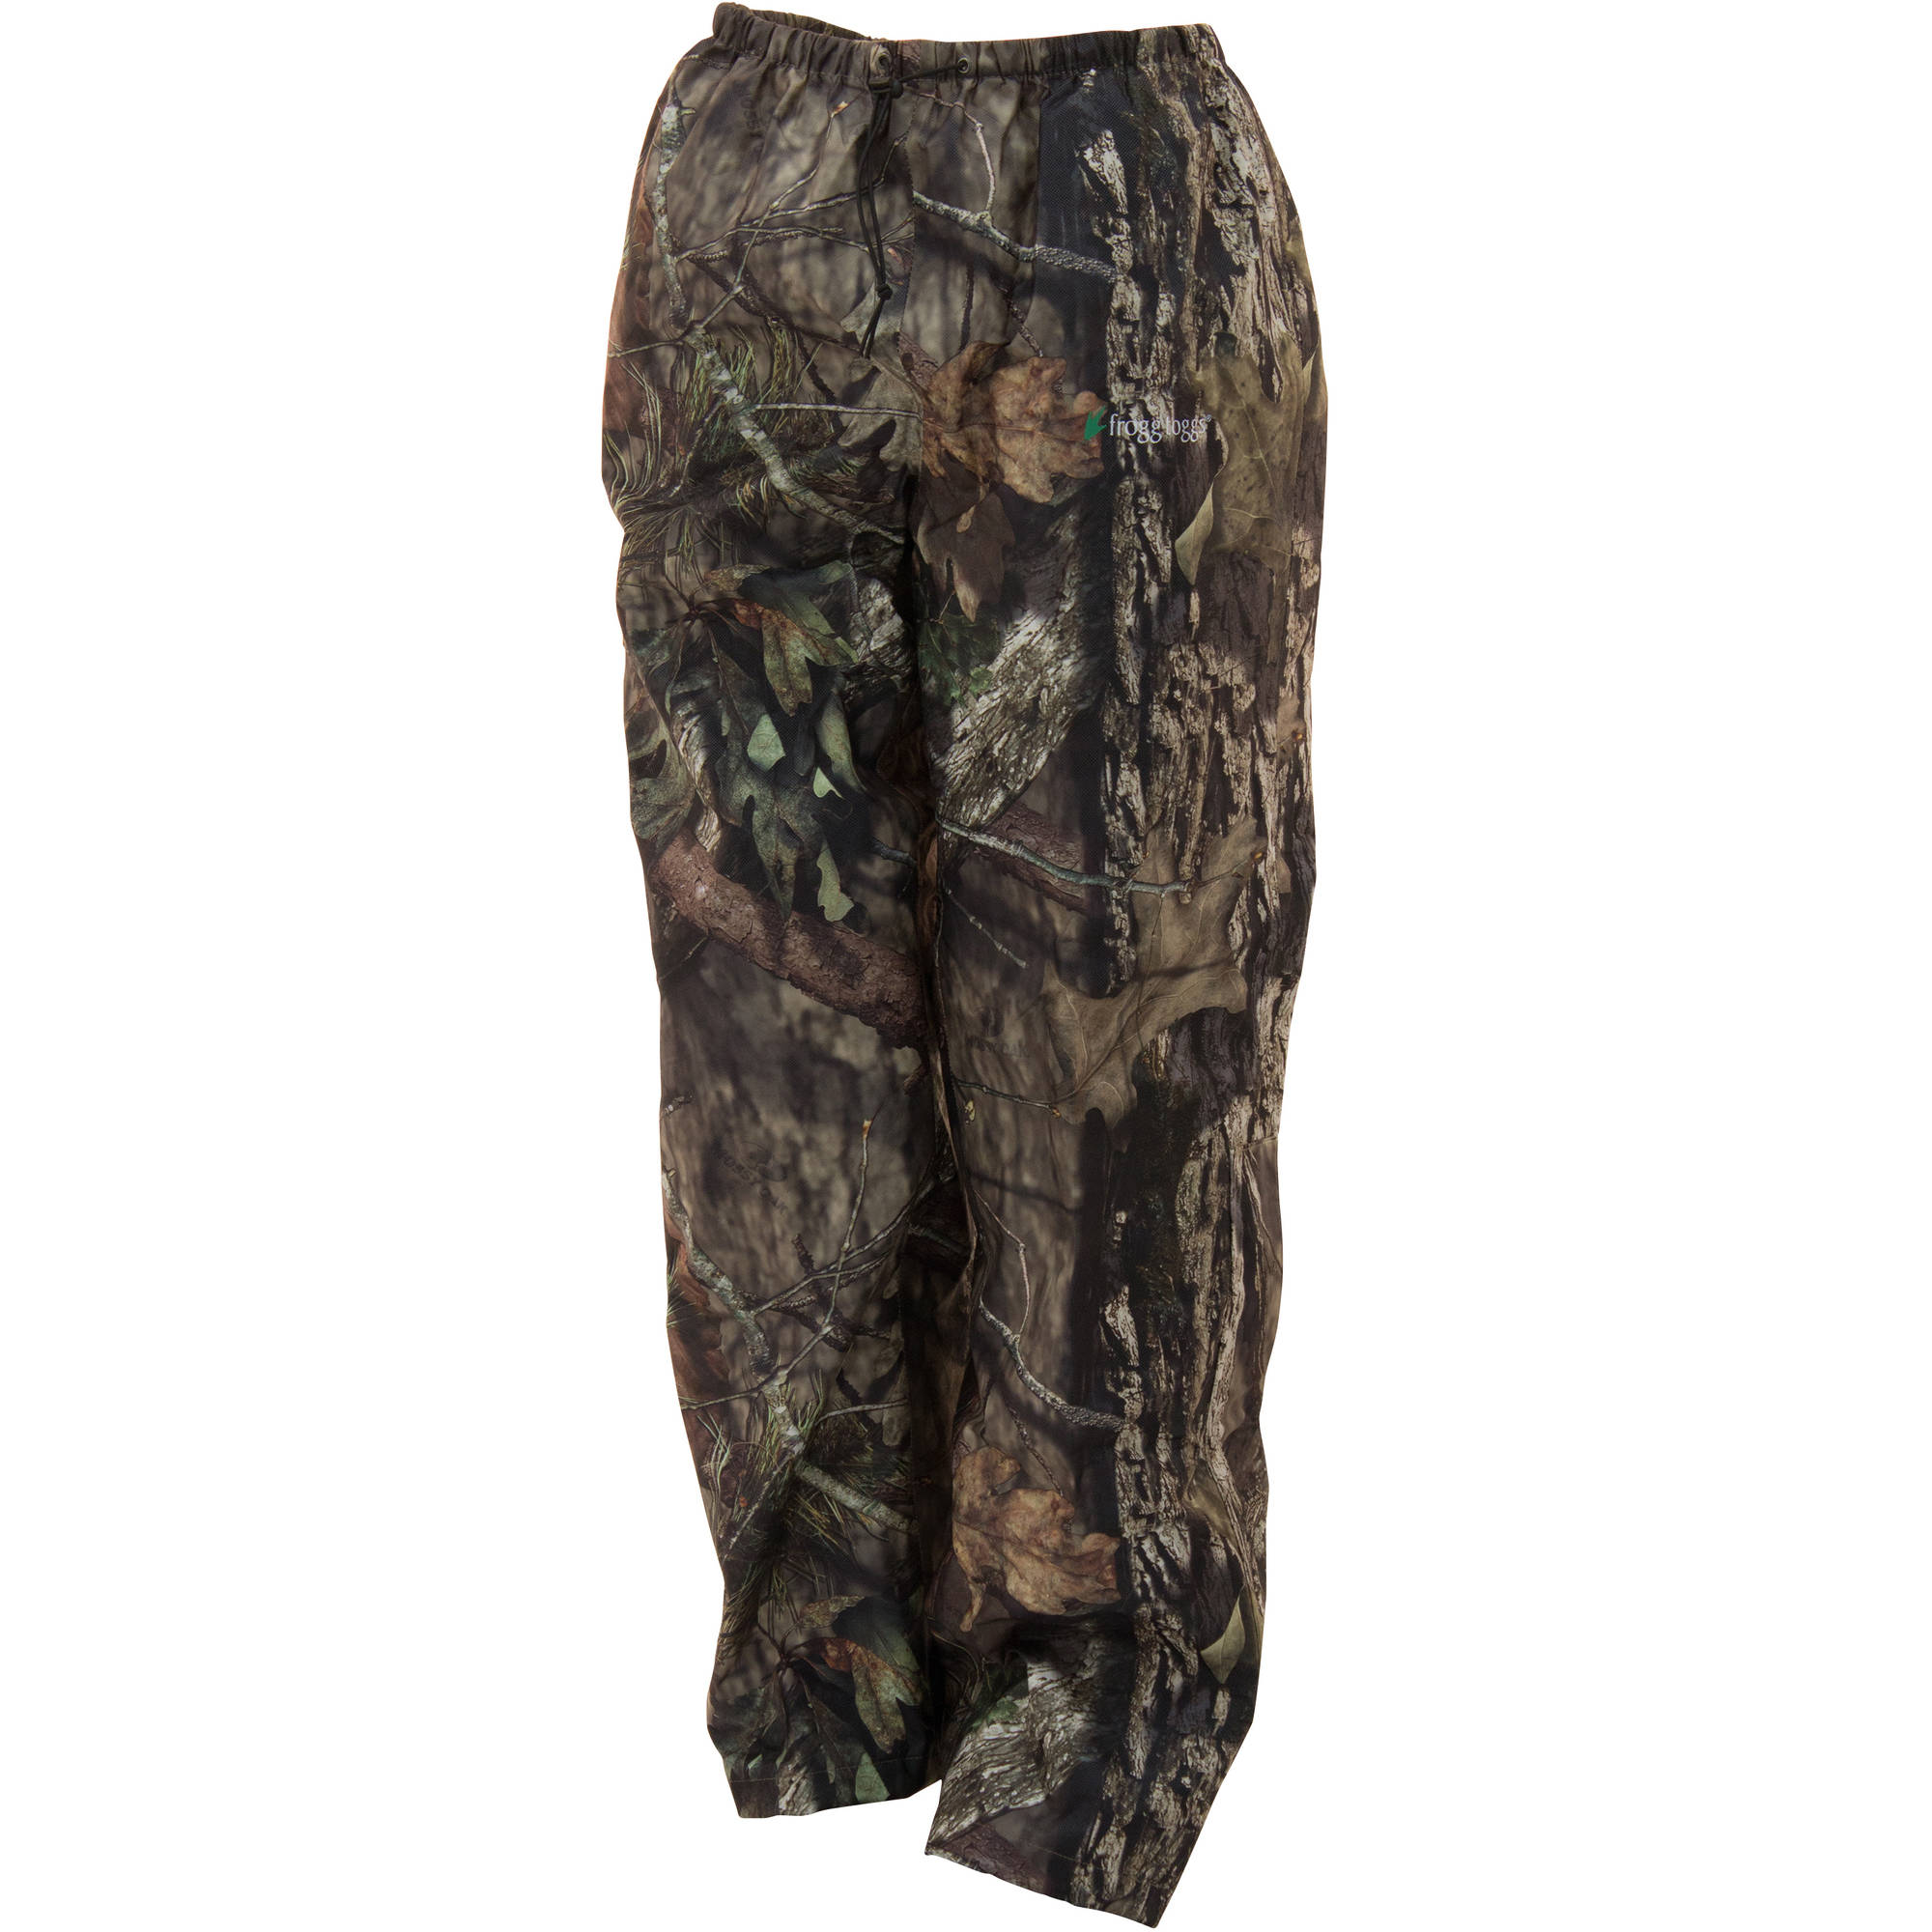 Pro Action Camo Pants, Mossy Oak Break Up Country